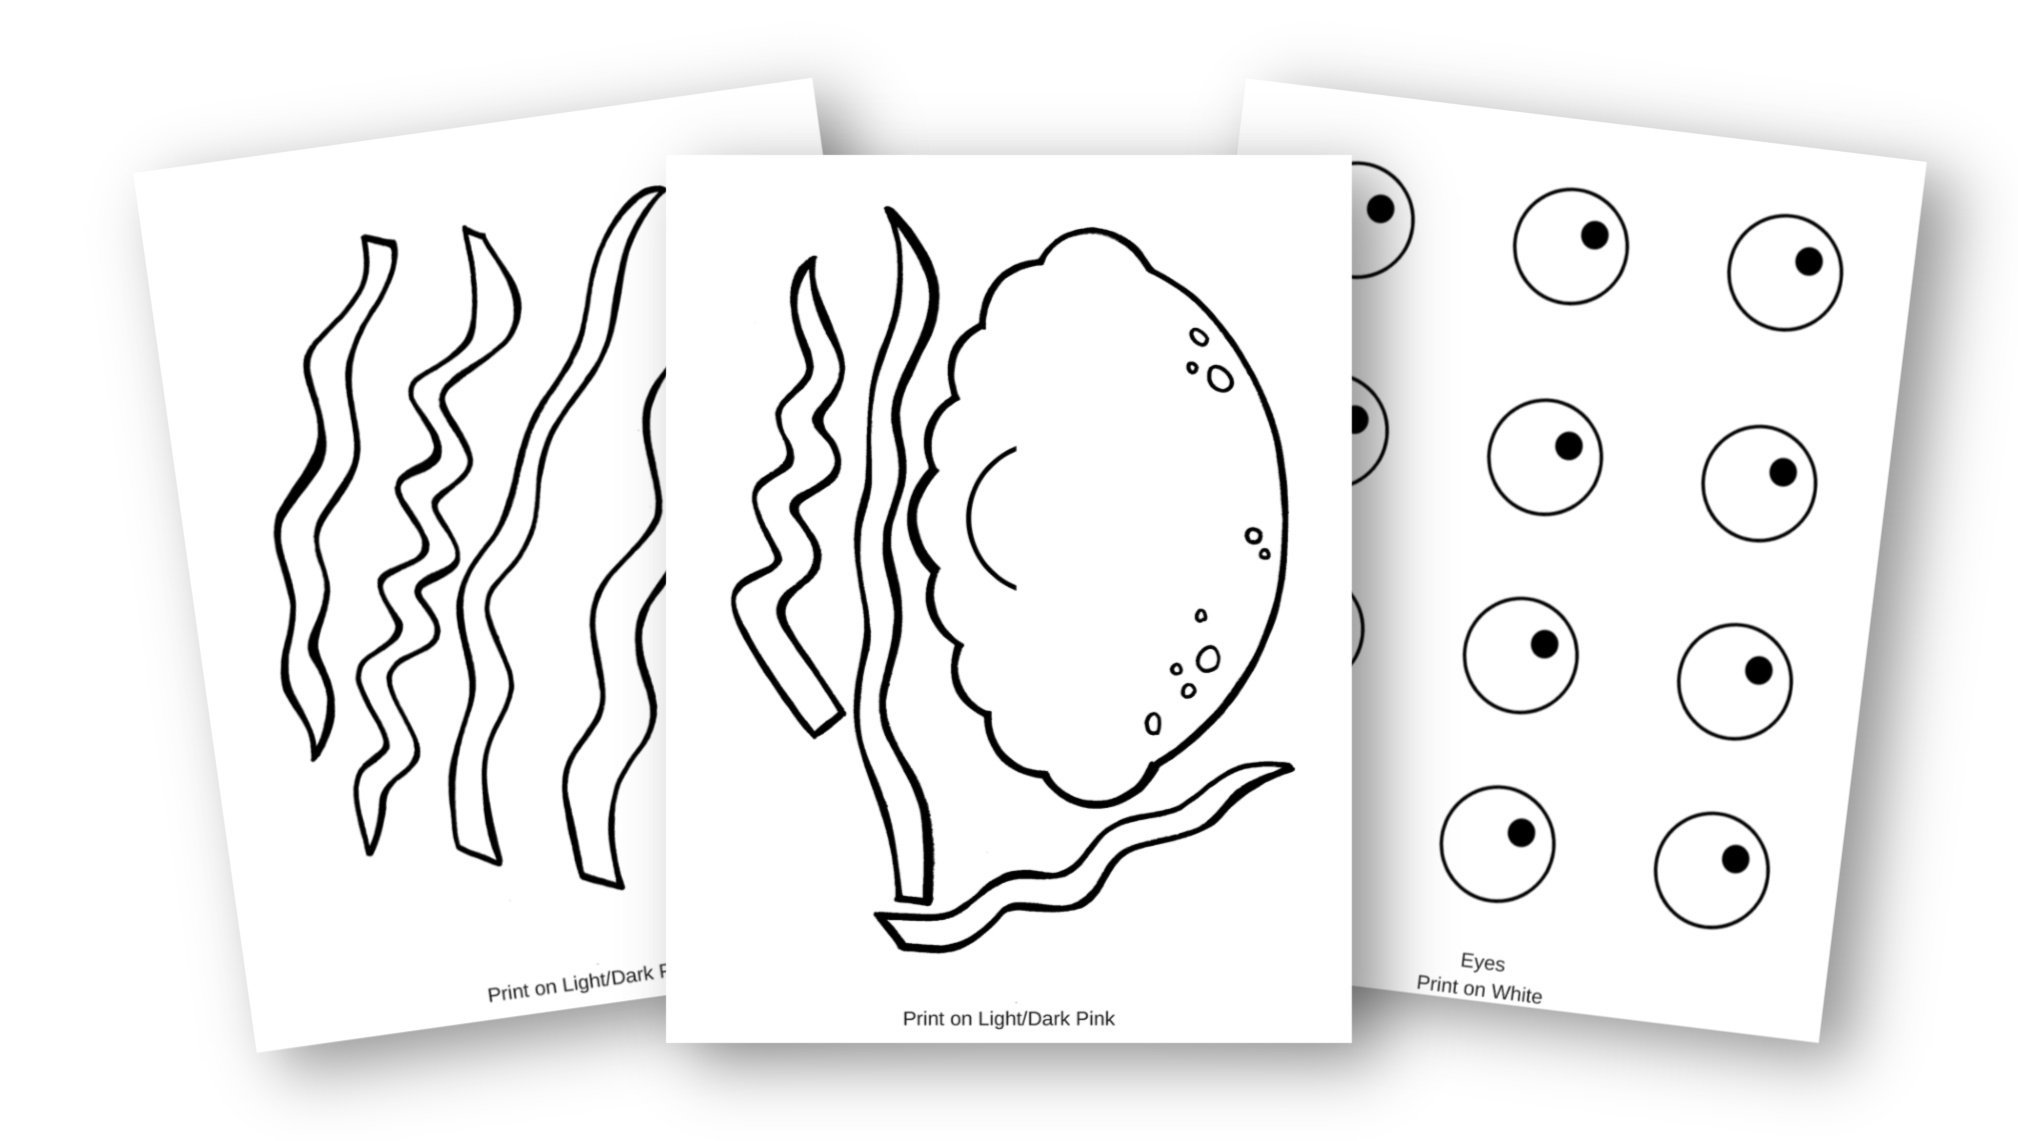 Free Printable Ocean Animal Jellyfish Crafts for kids of all ages, including preschoolers and toddlers